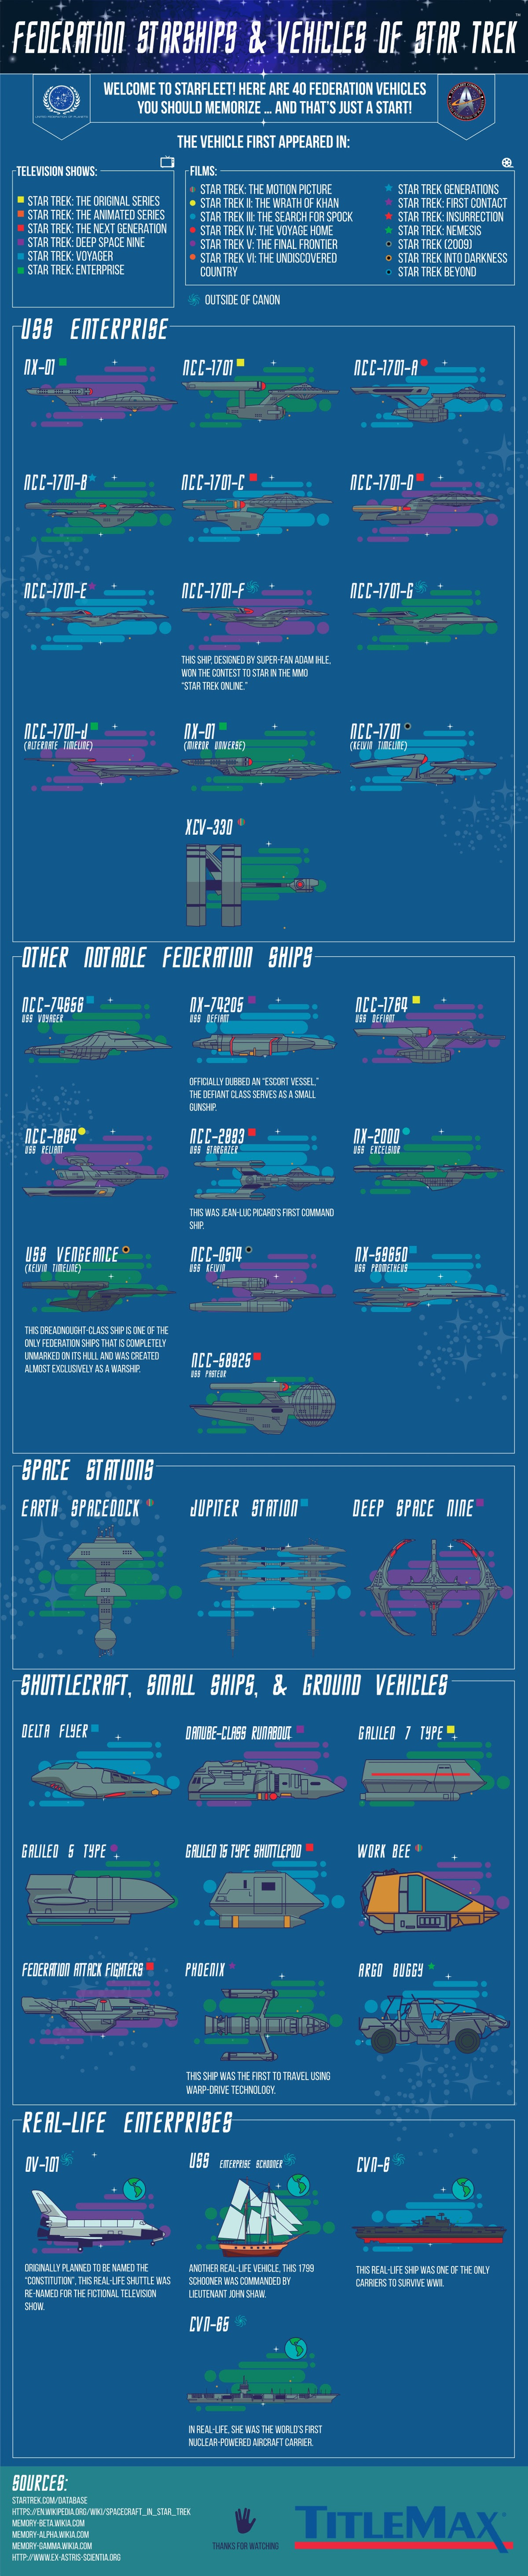 Federation Starships and Vehicles of Star Trek #infographic